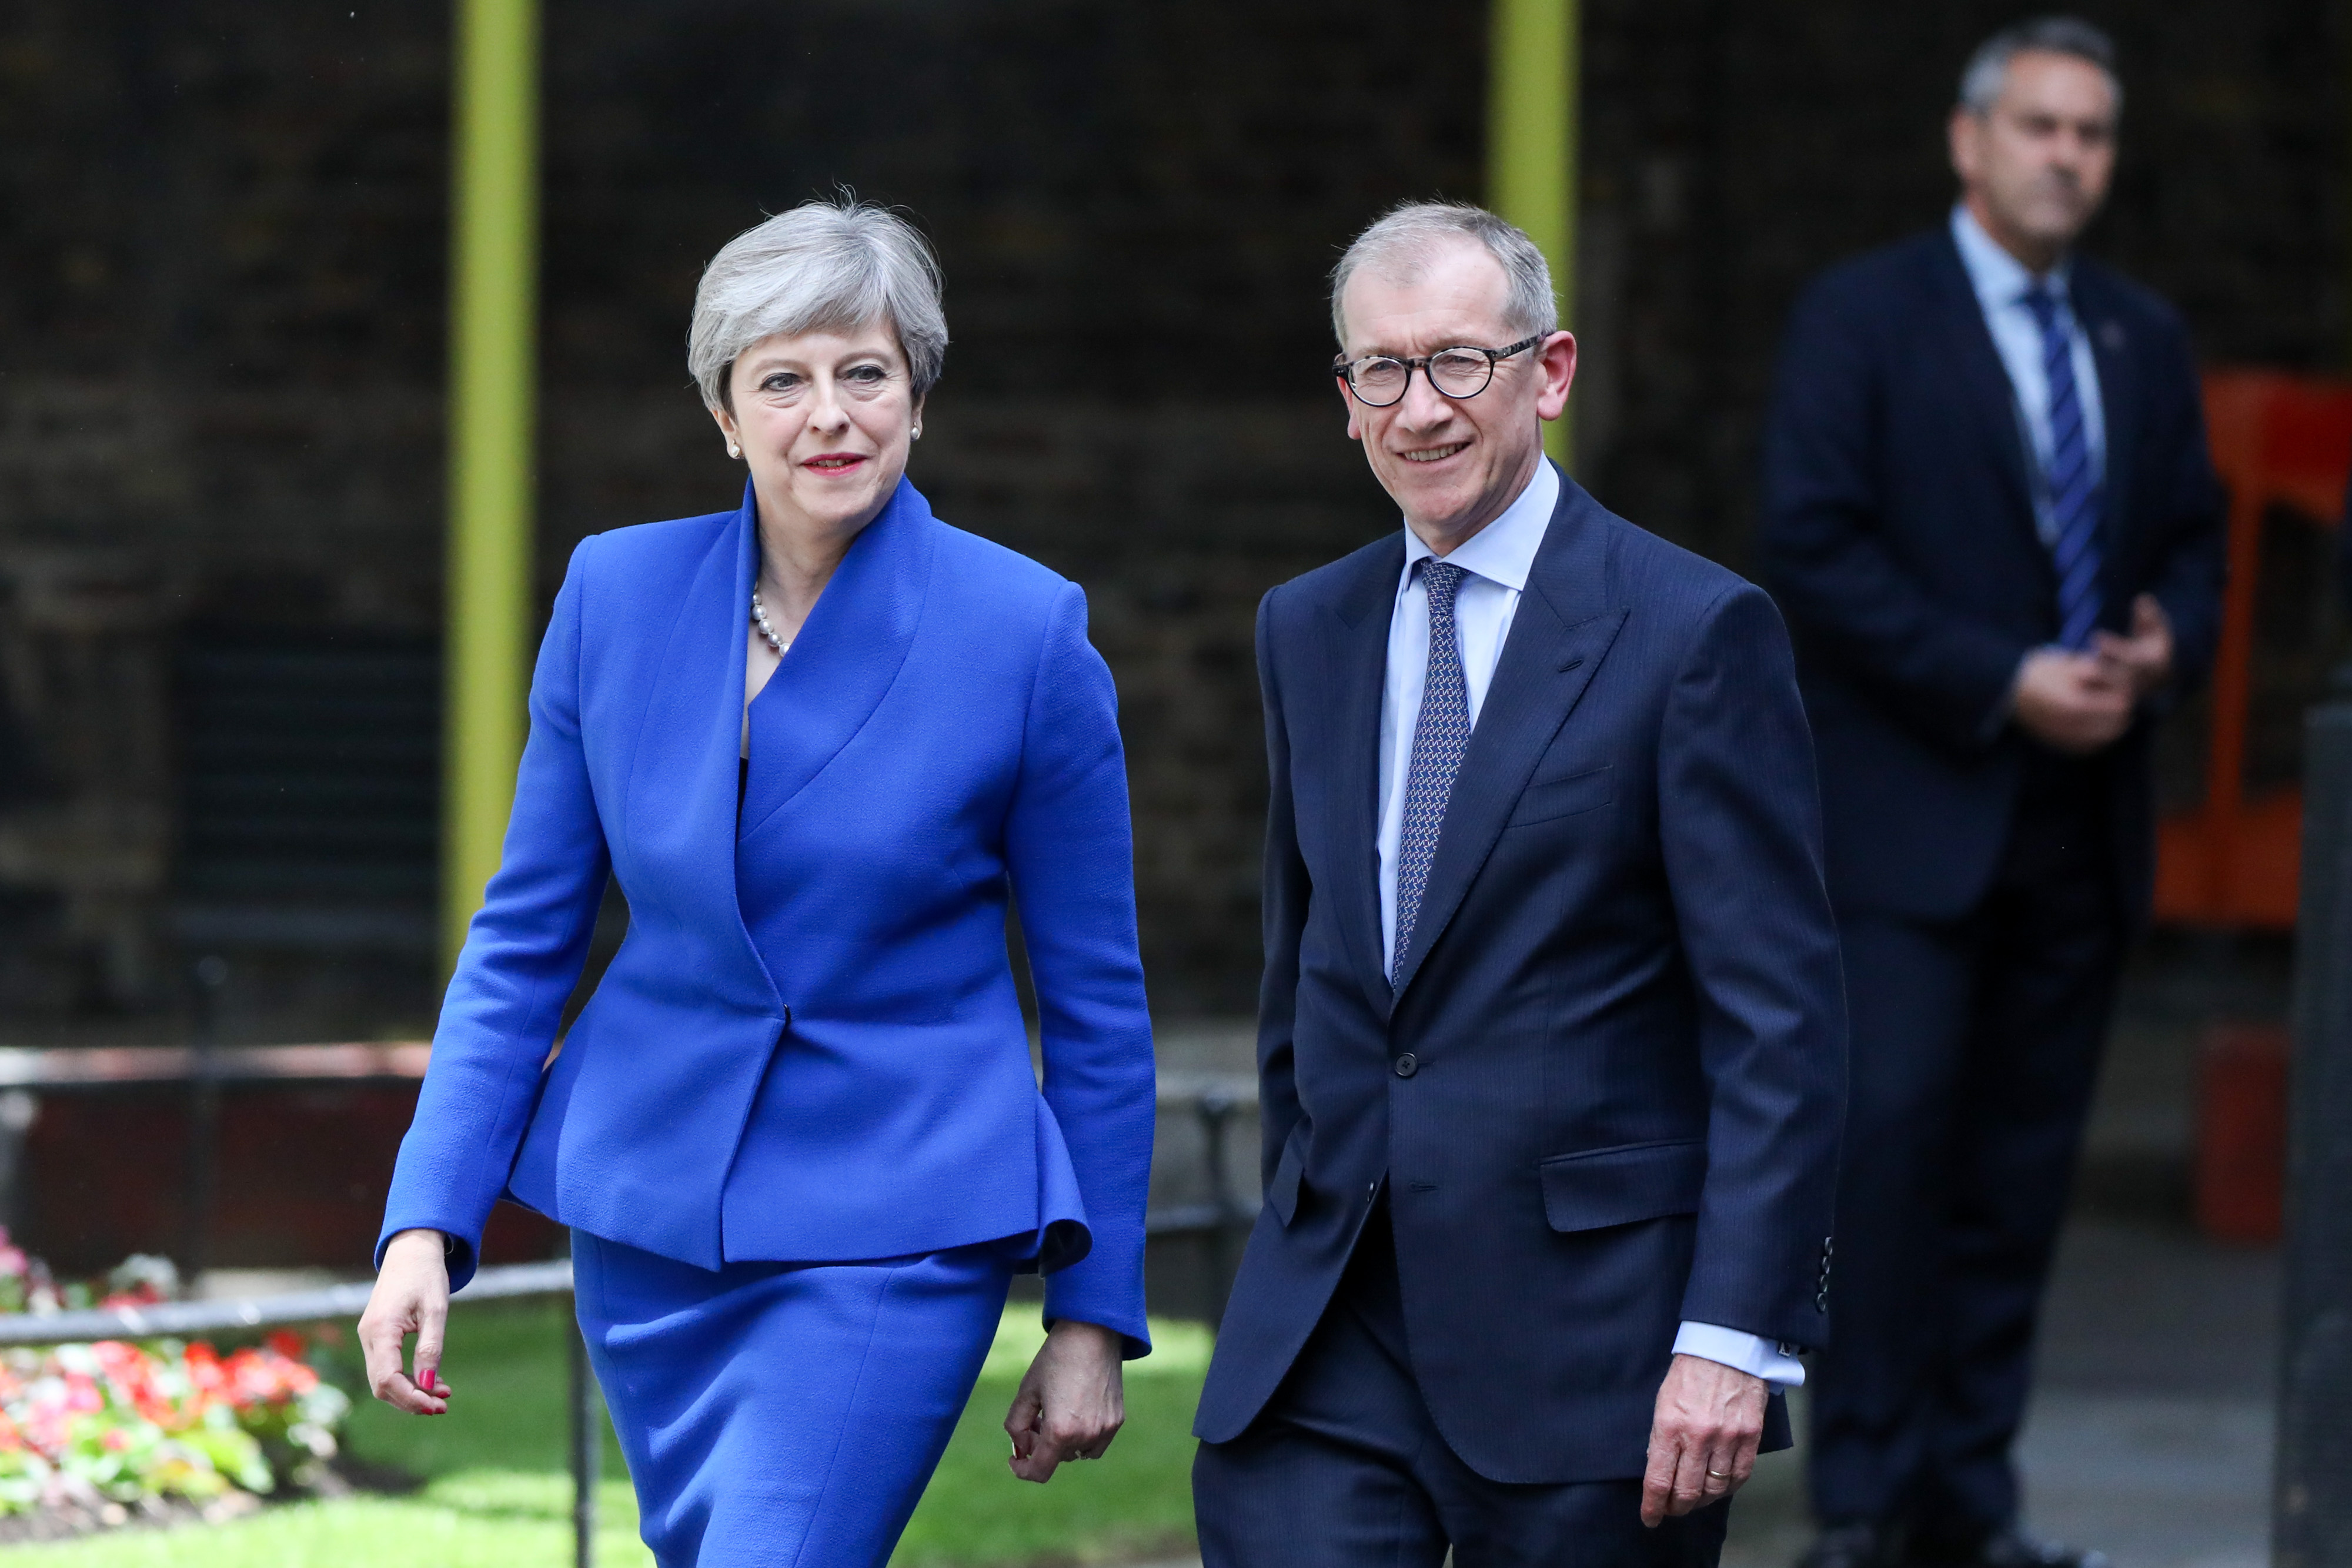 Theresa May and her husband Philip May return to number 10 Downing Street after meeting Queen Elizabeth II, in London, on June 9, 2017.